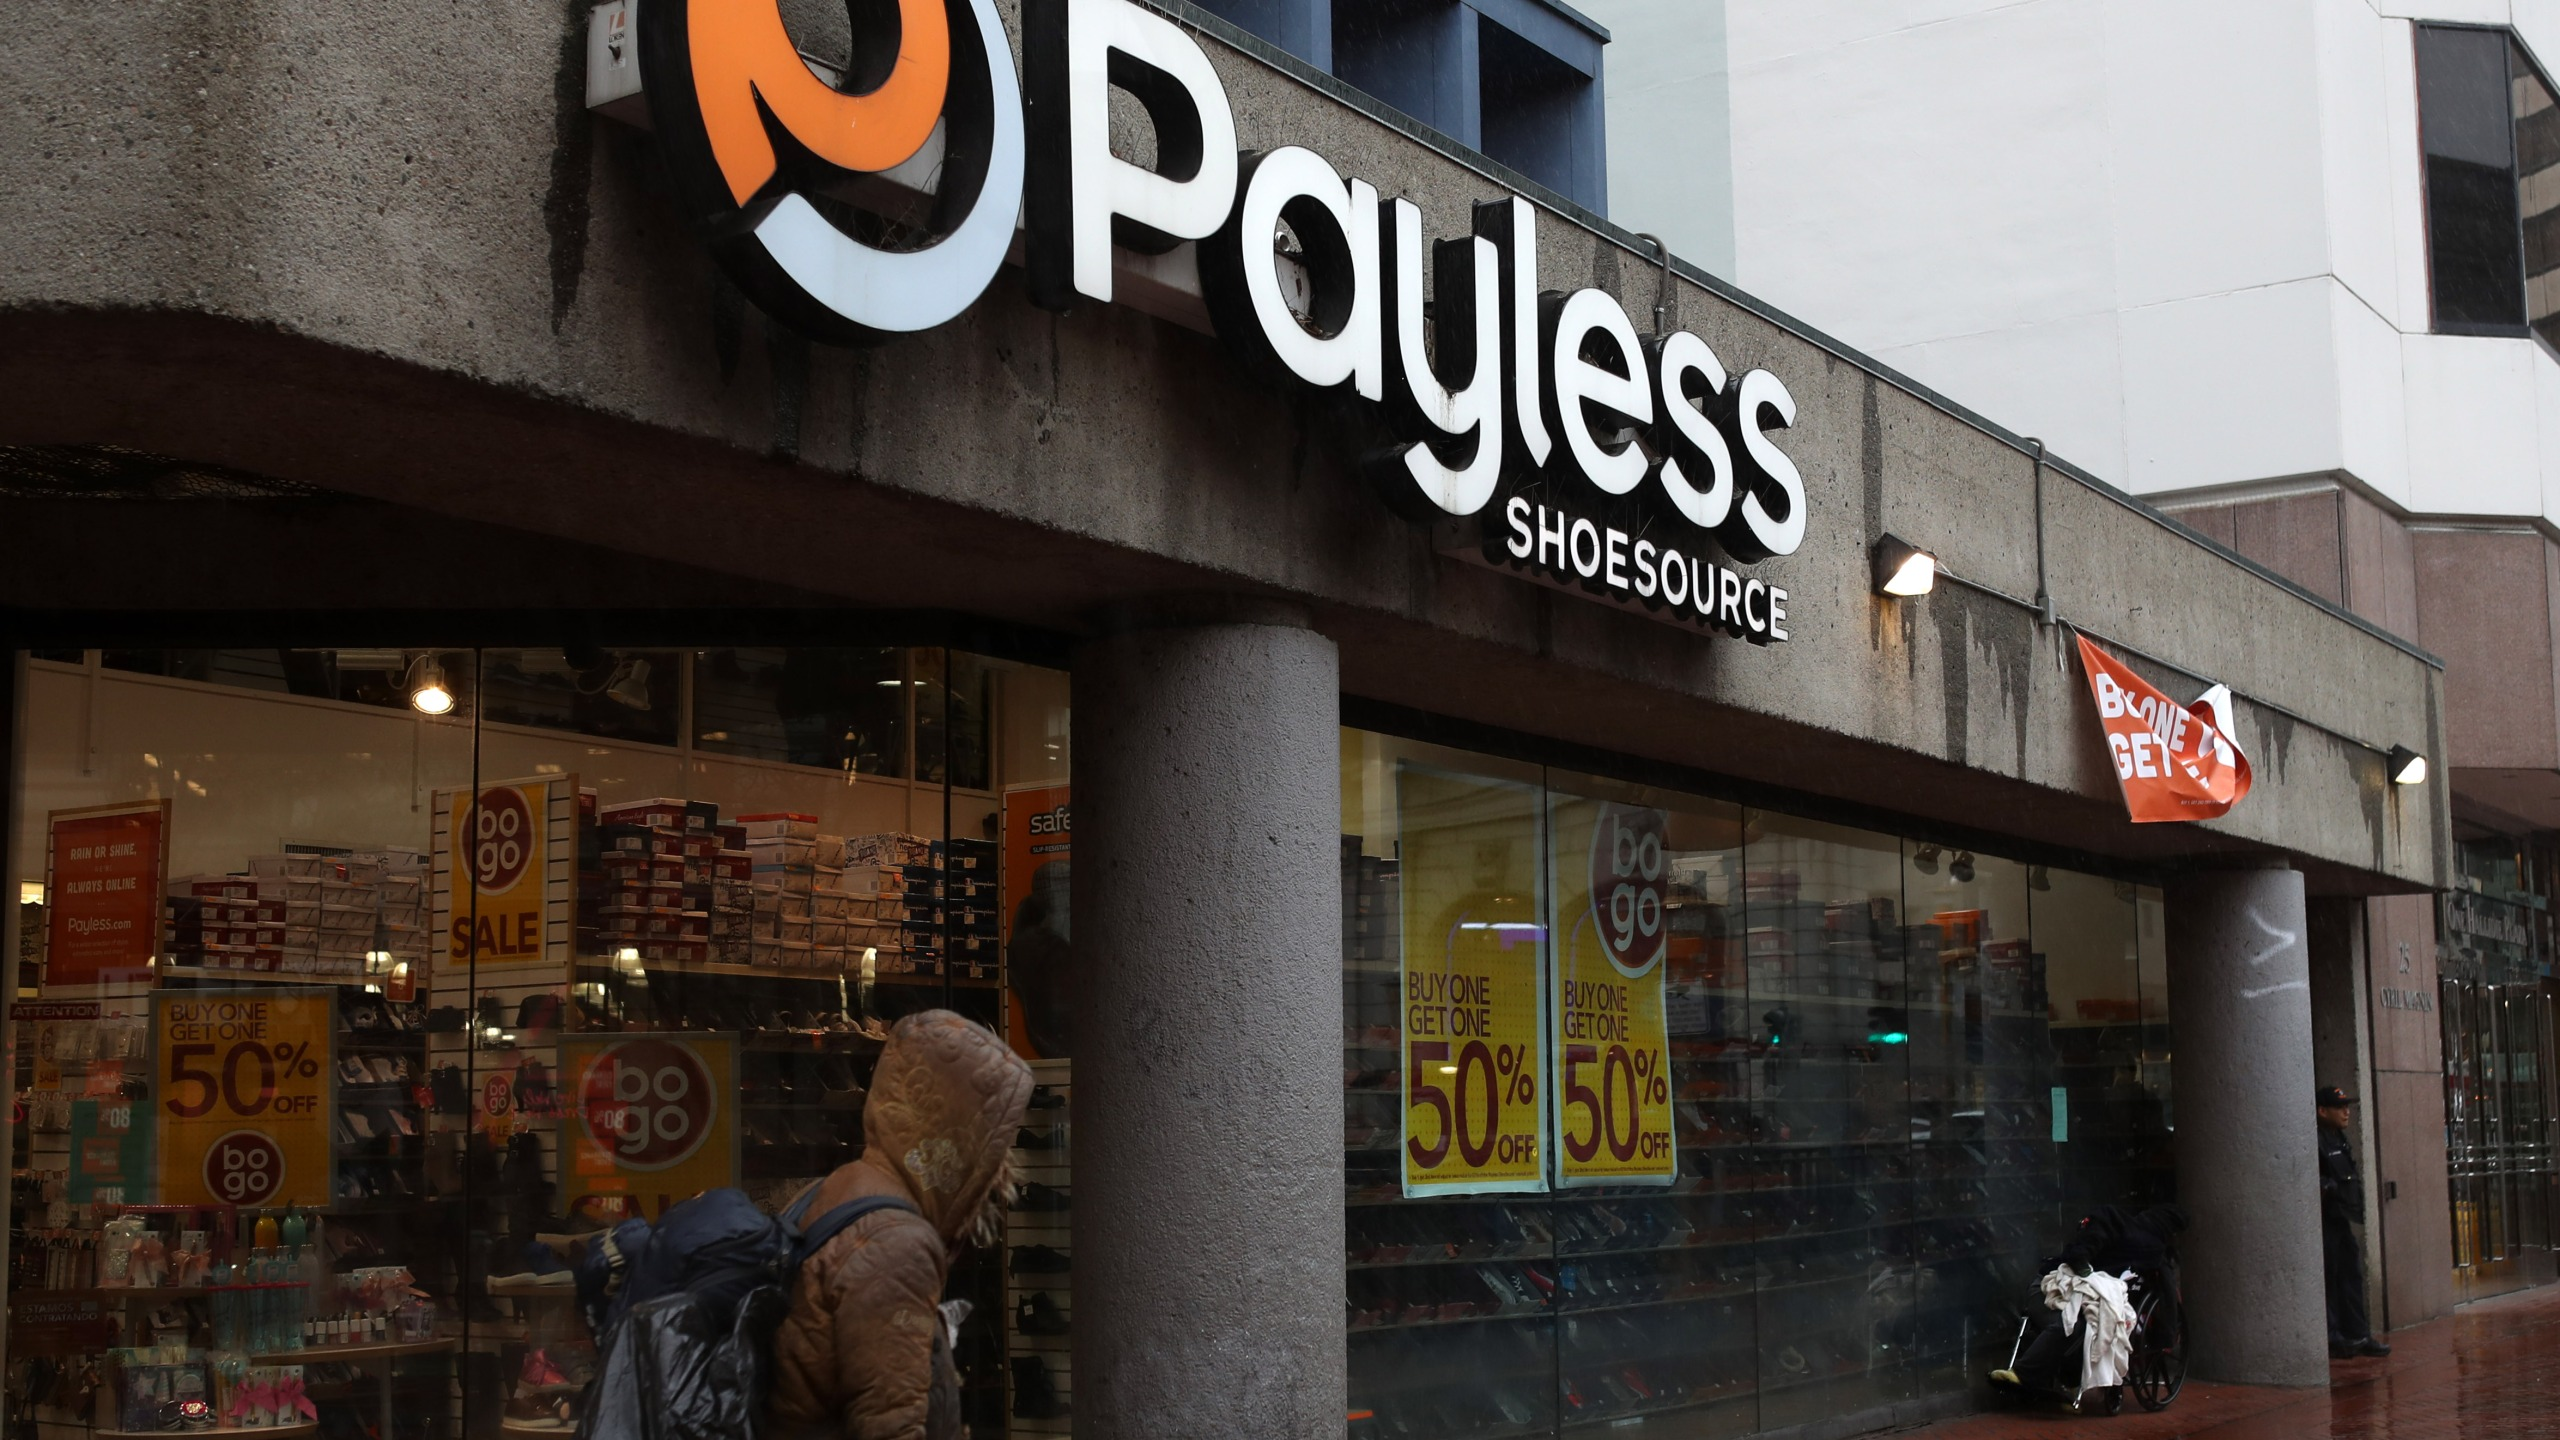 Payless Shoes_2019020814950482.jpg_1550243247926